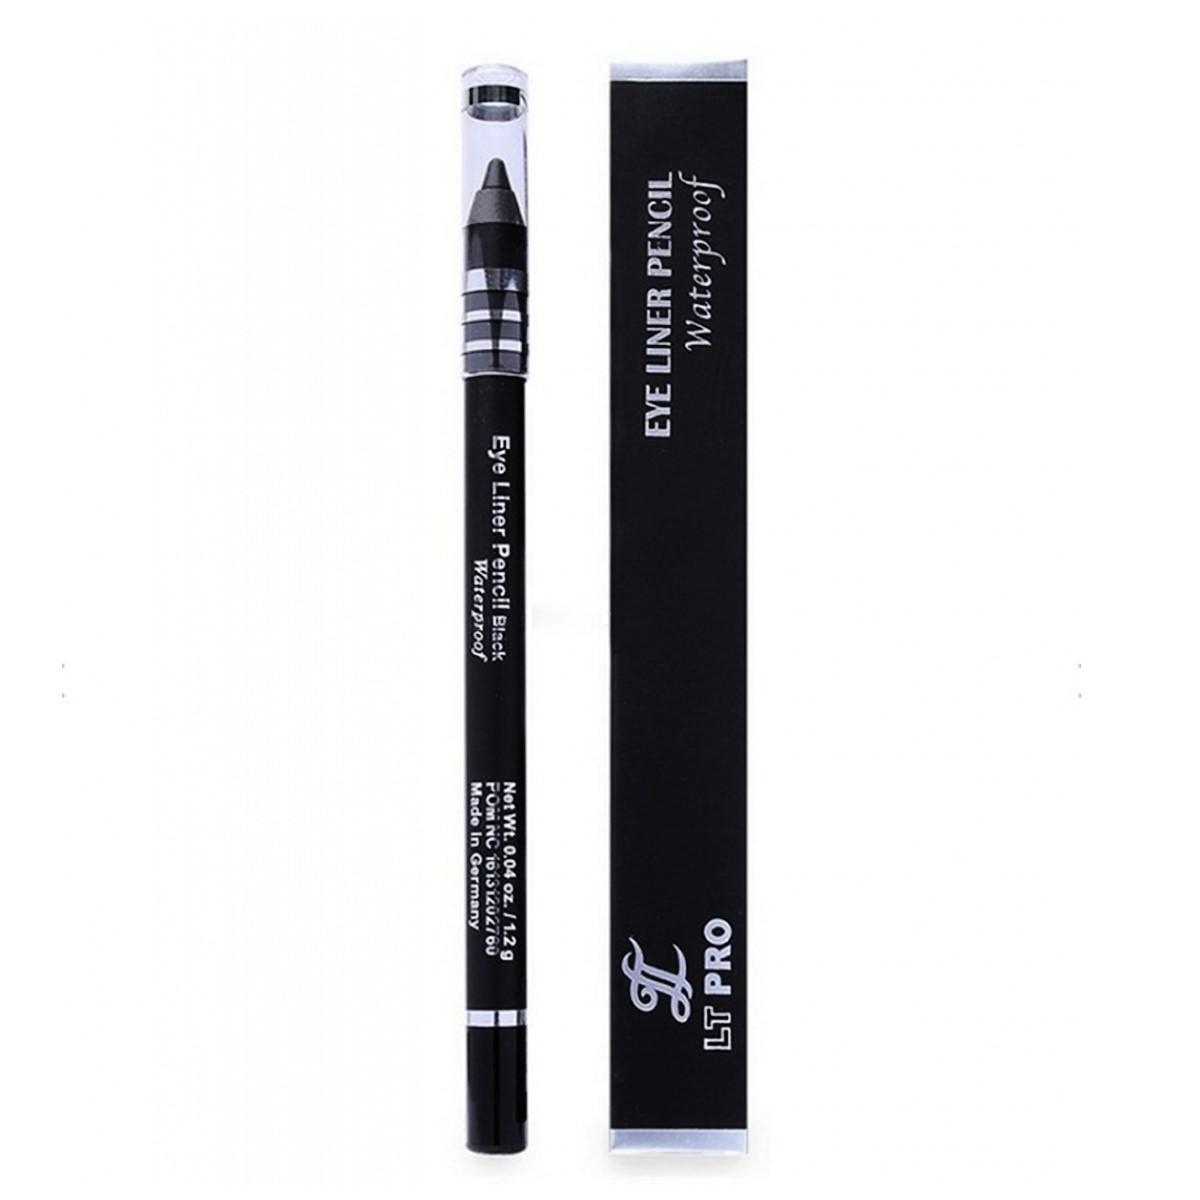 LT-Pro---Eyeliner-Pencil-Waterproof---Black-sfw(1)